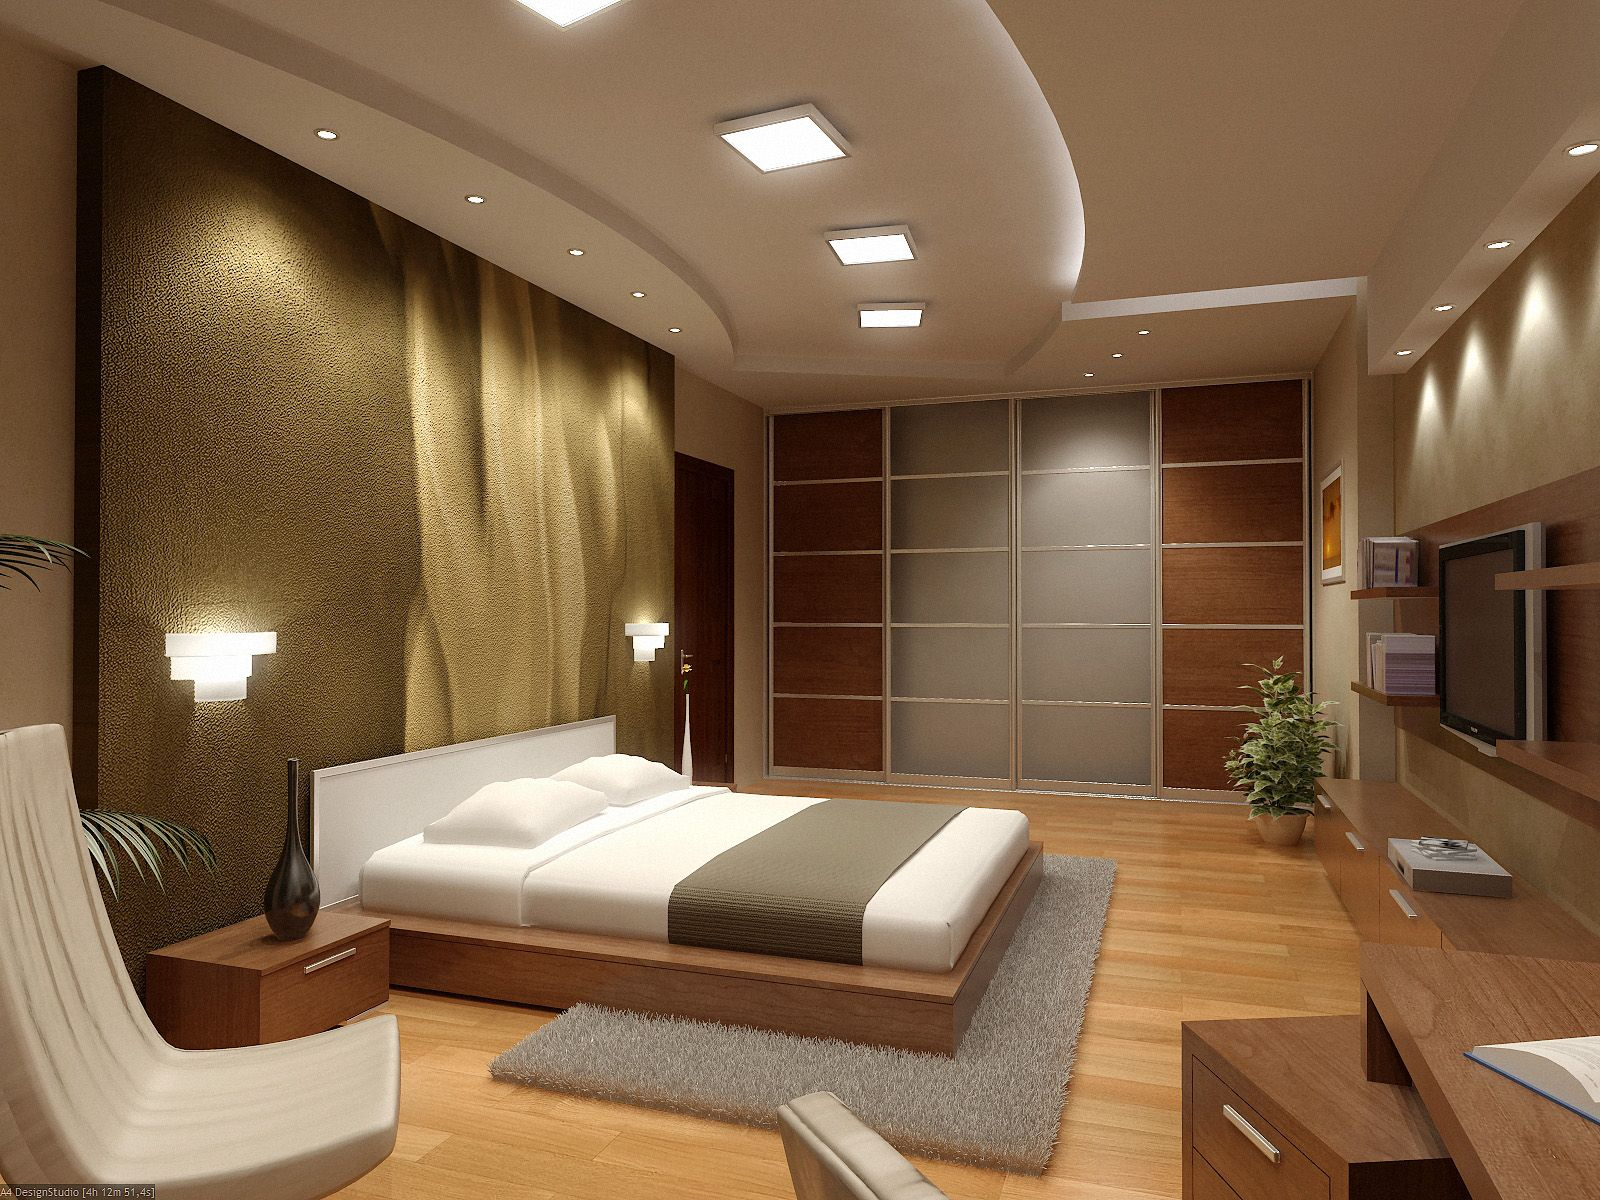 New home designs latest modern homes luxury interior for Luxurious bedroom interior design ideas